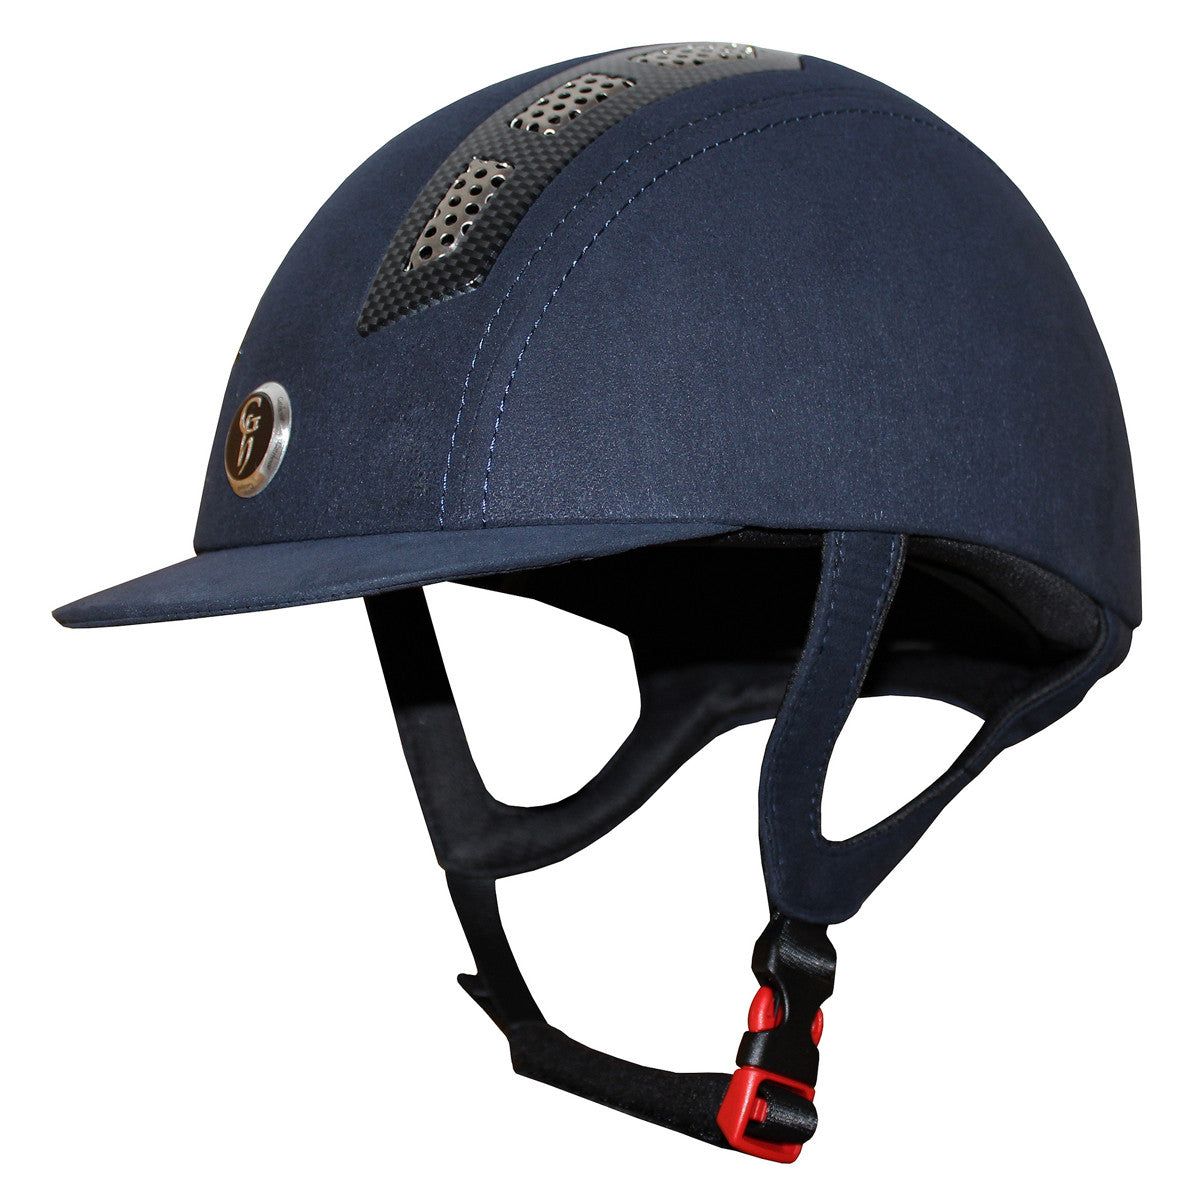 Fair Price Equestrian | Gatehouse Suedette Chelsea Air Flow Pro Riding Hat